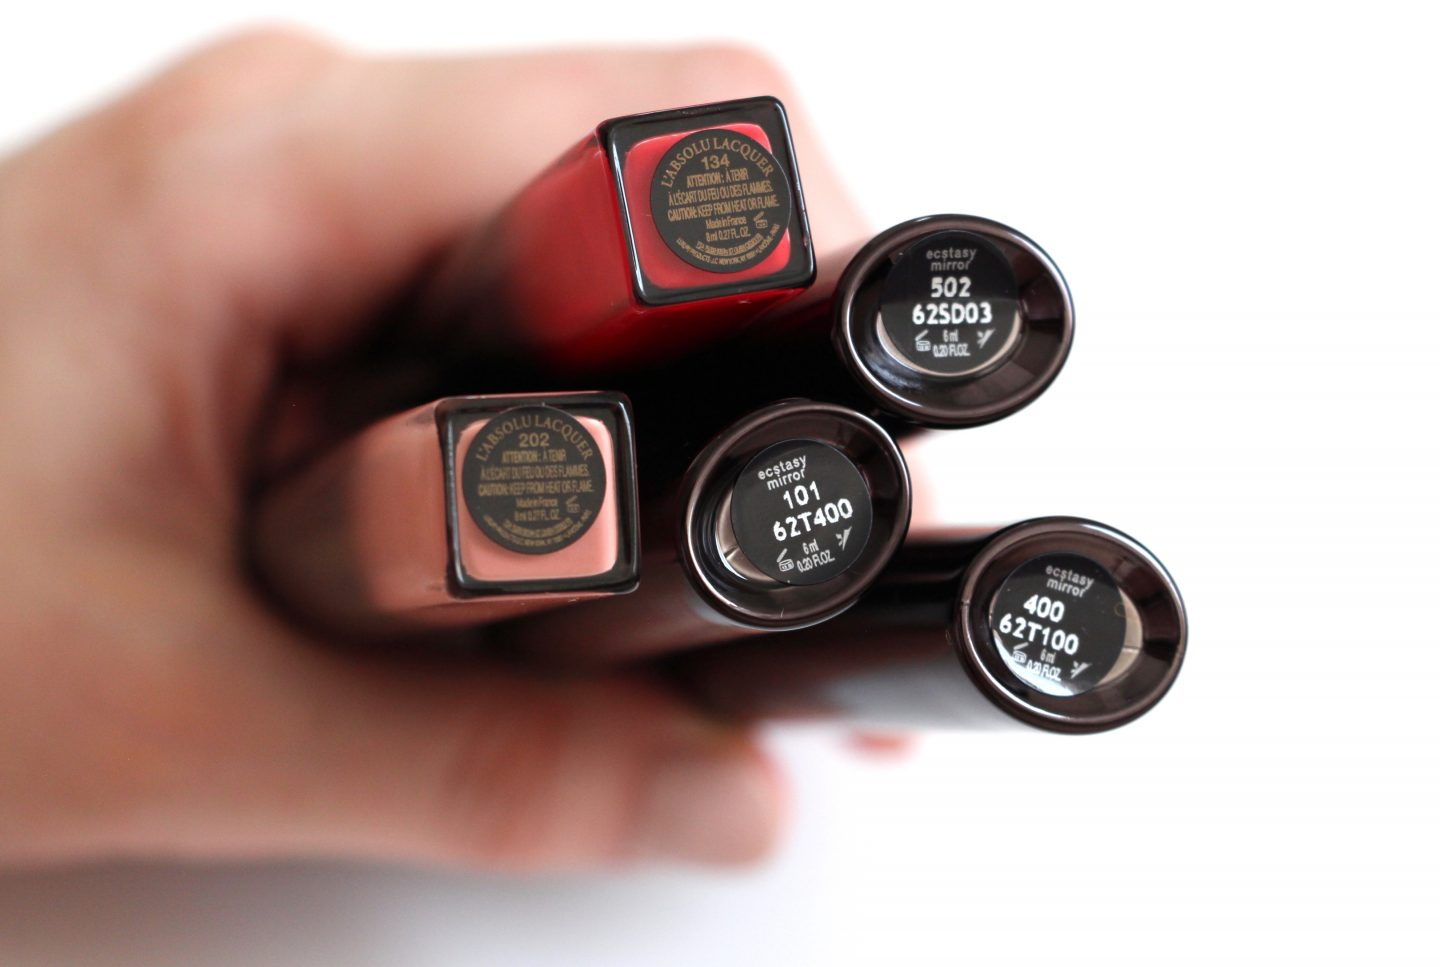 Lip Lacquers: Lancome l'absolu lacquer in 134 and 202, Armani ecstasy mirror in 101, 400, and 502